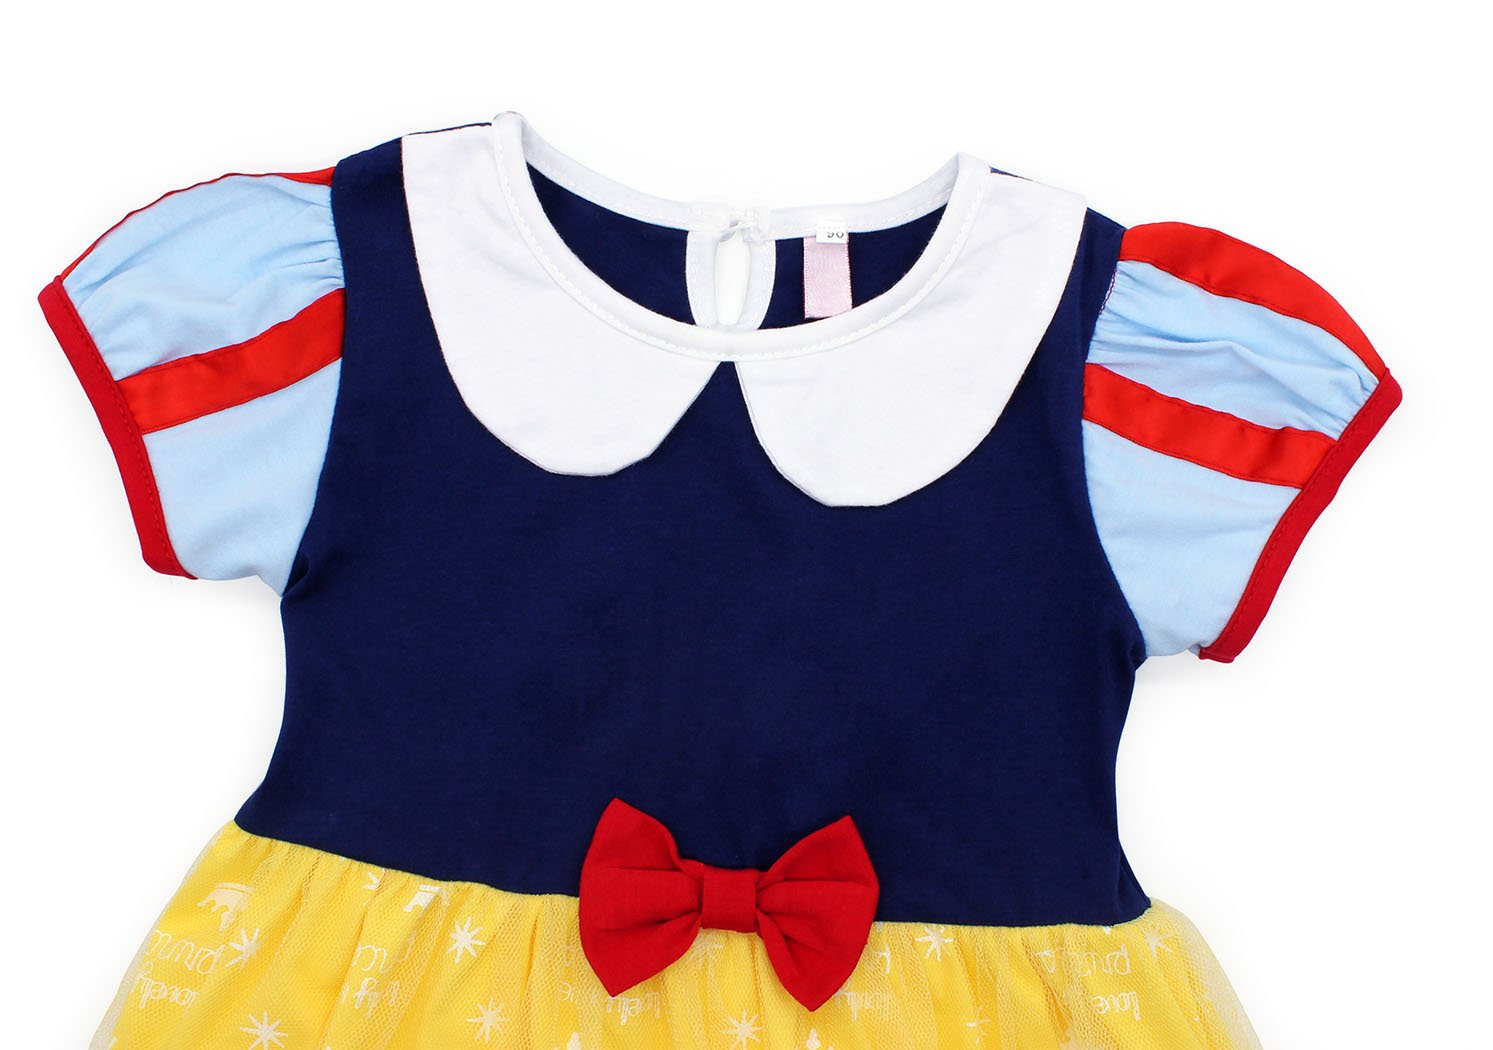 Jurebecia Princess Snow White Dress Toddler Girls Nightgowns Birthday Halloween Party Costumes with Cape Size 3T by Jurebecia (Image #5)